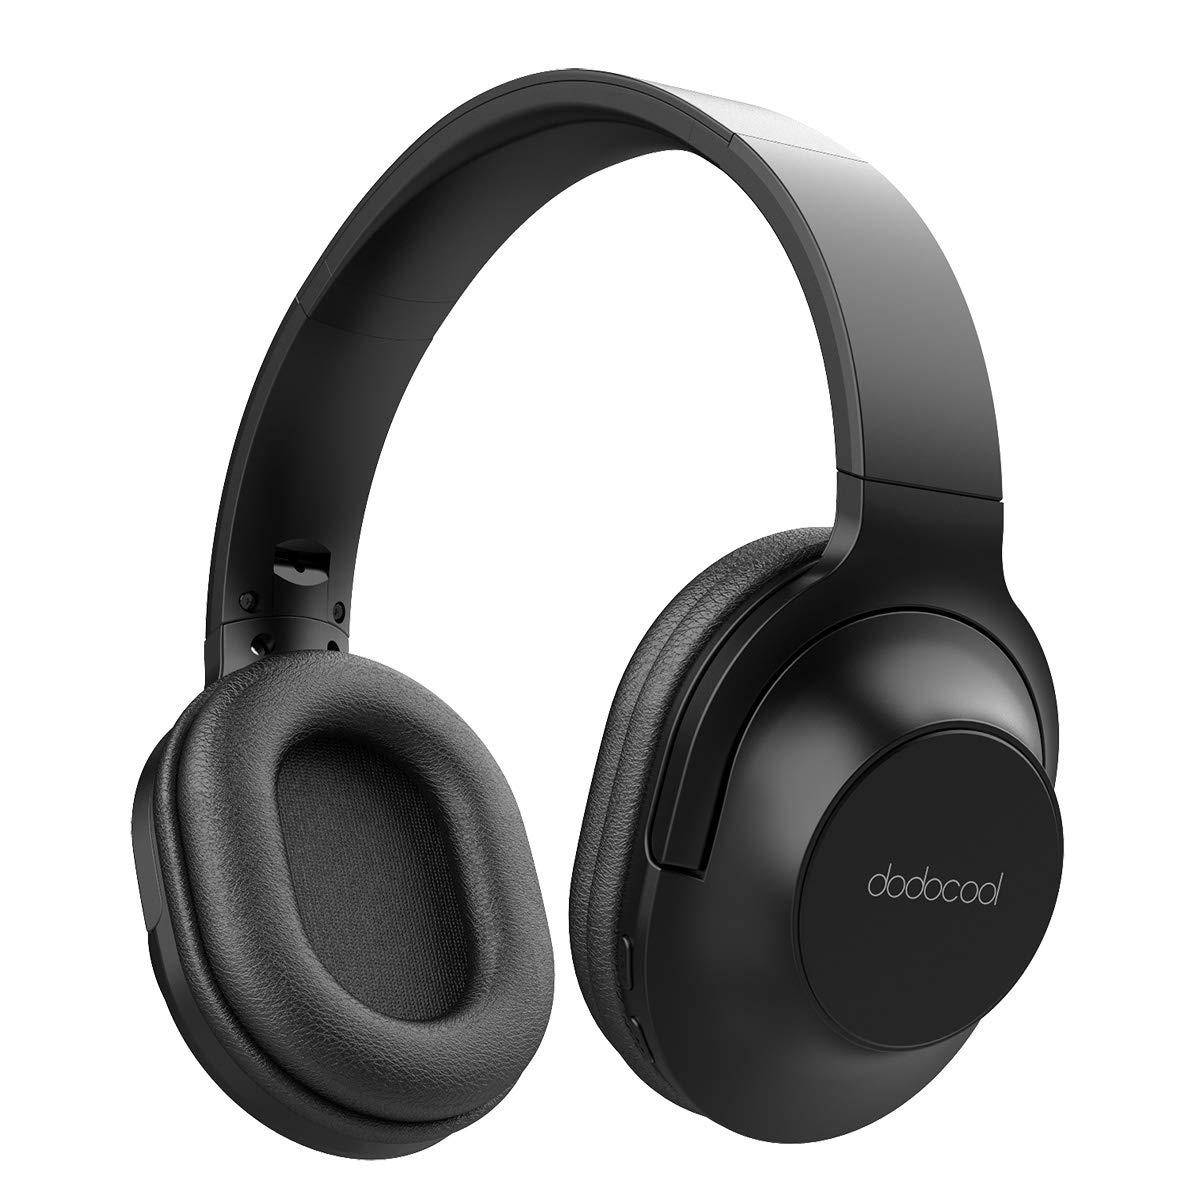 Bluetooth Headphones Over Ear, dodocool Hi-Fi Stereo Wireless Headset, Comfortable Memory-Protein Earpads, Foldable Headset w/Built-in Mic Wired Mode PC/Cell Phones, Black